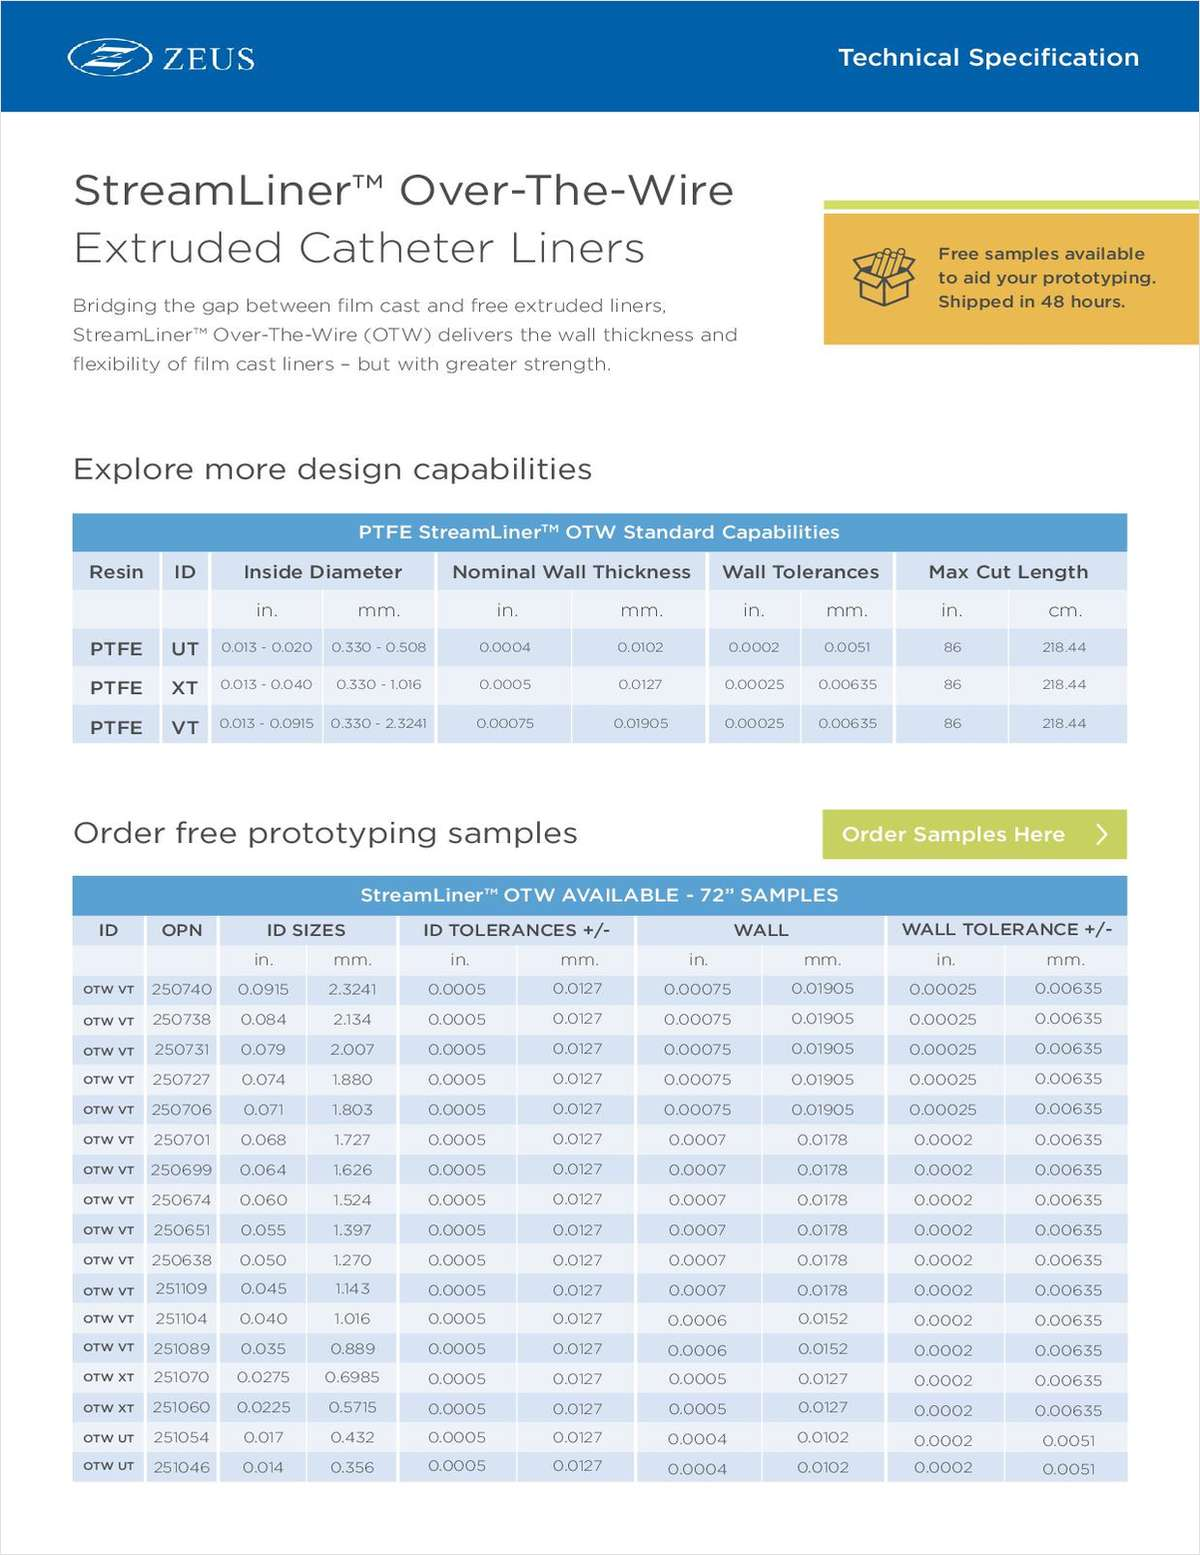 Extruded Over-The-Wire, This New PTFE Catheter Liner Enables Medical Device Manufacturers to Develop Safer, Smoother and Stronger Catheters